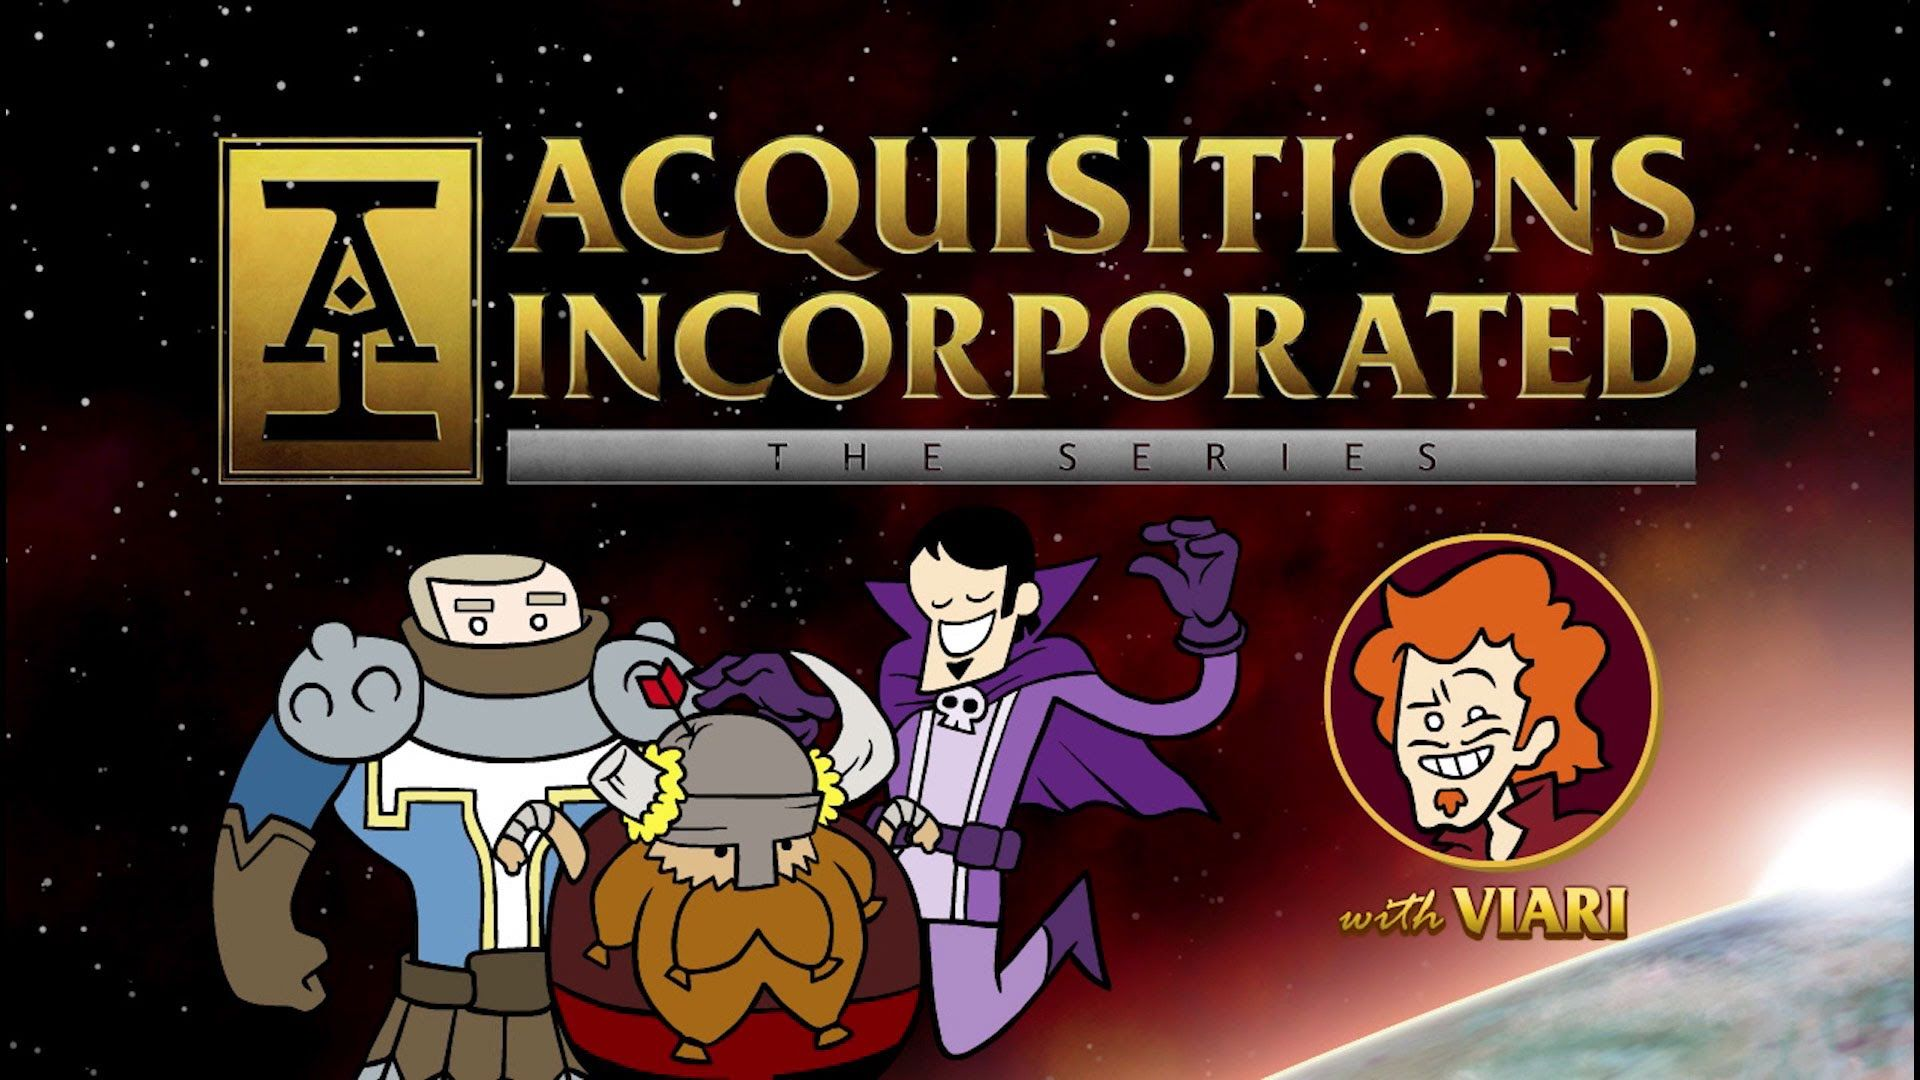 Episode 01 Acquisitions Incorporated The Series Funny